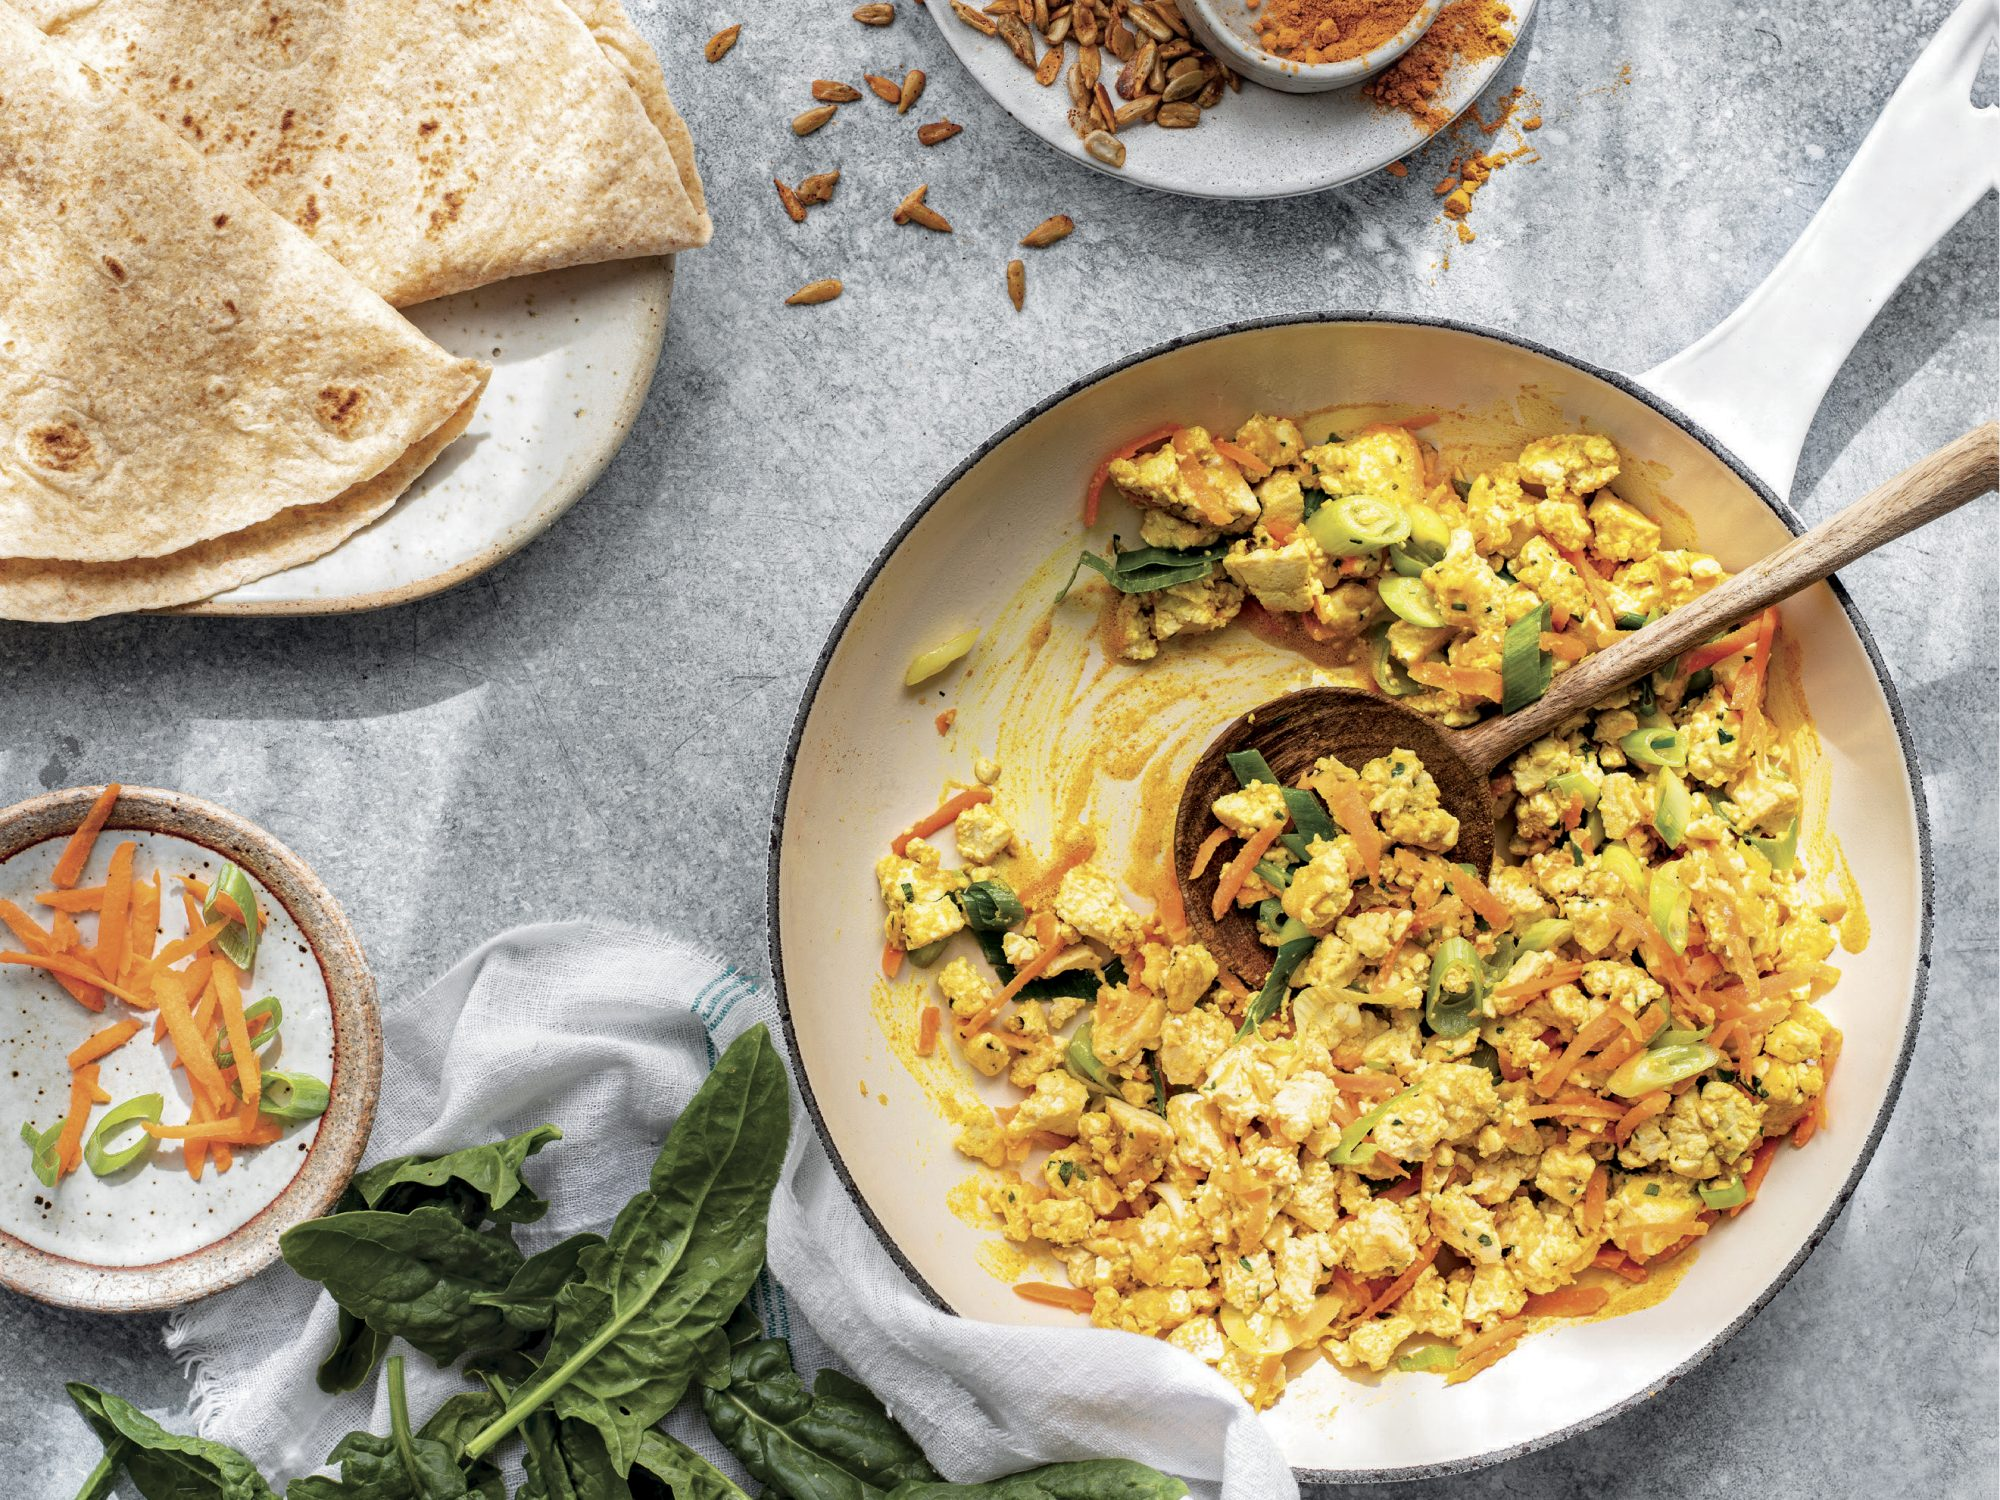 Jane Goodall's Tofu Scramble Wraps With Spinach and Spiced Sunflower Seeds